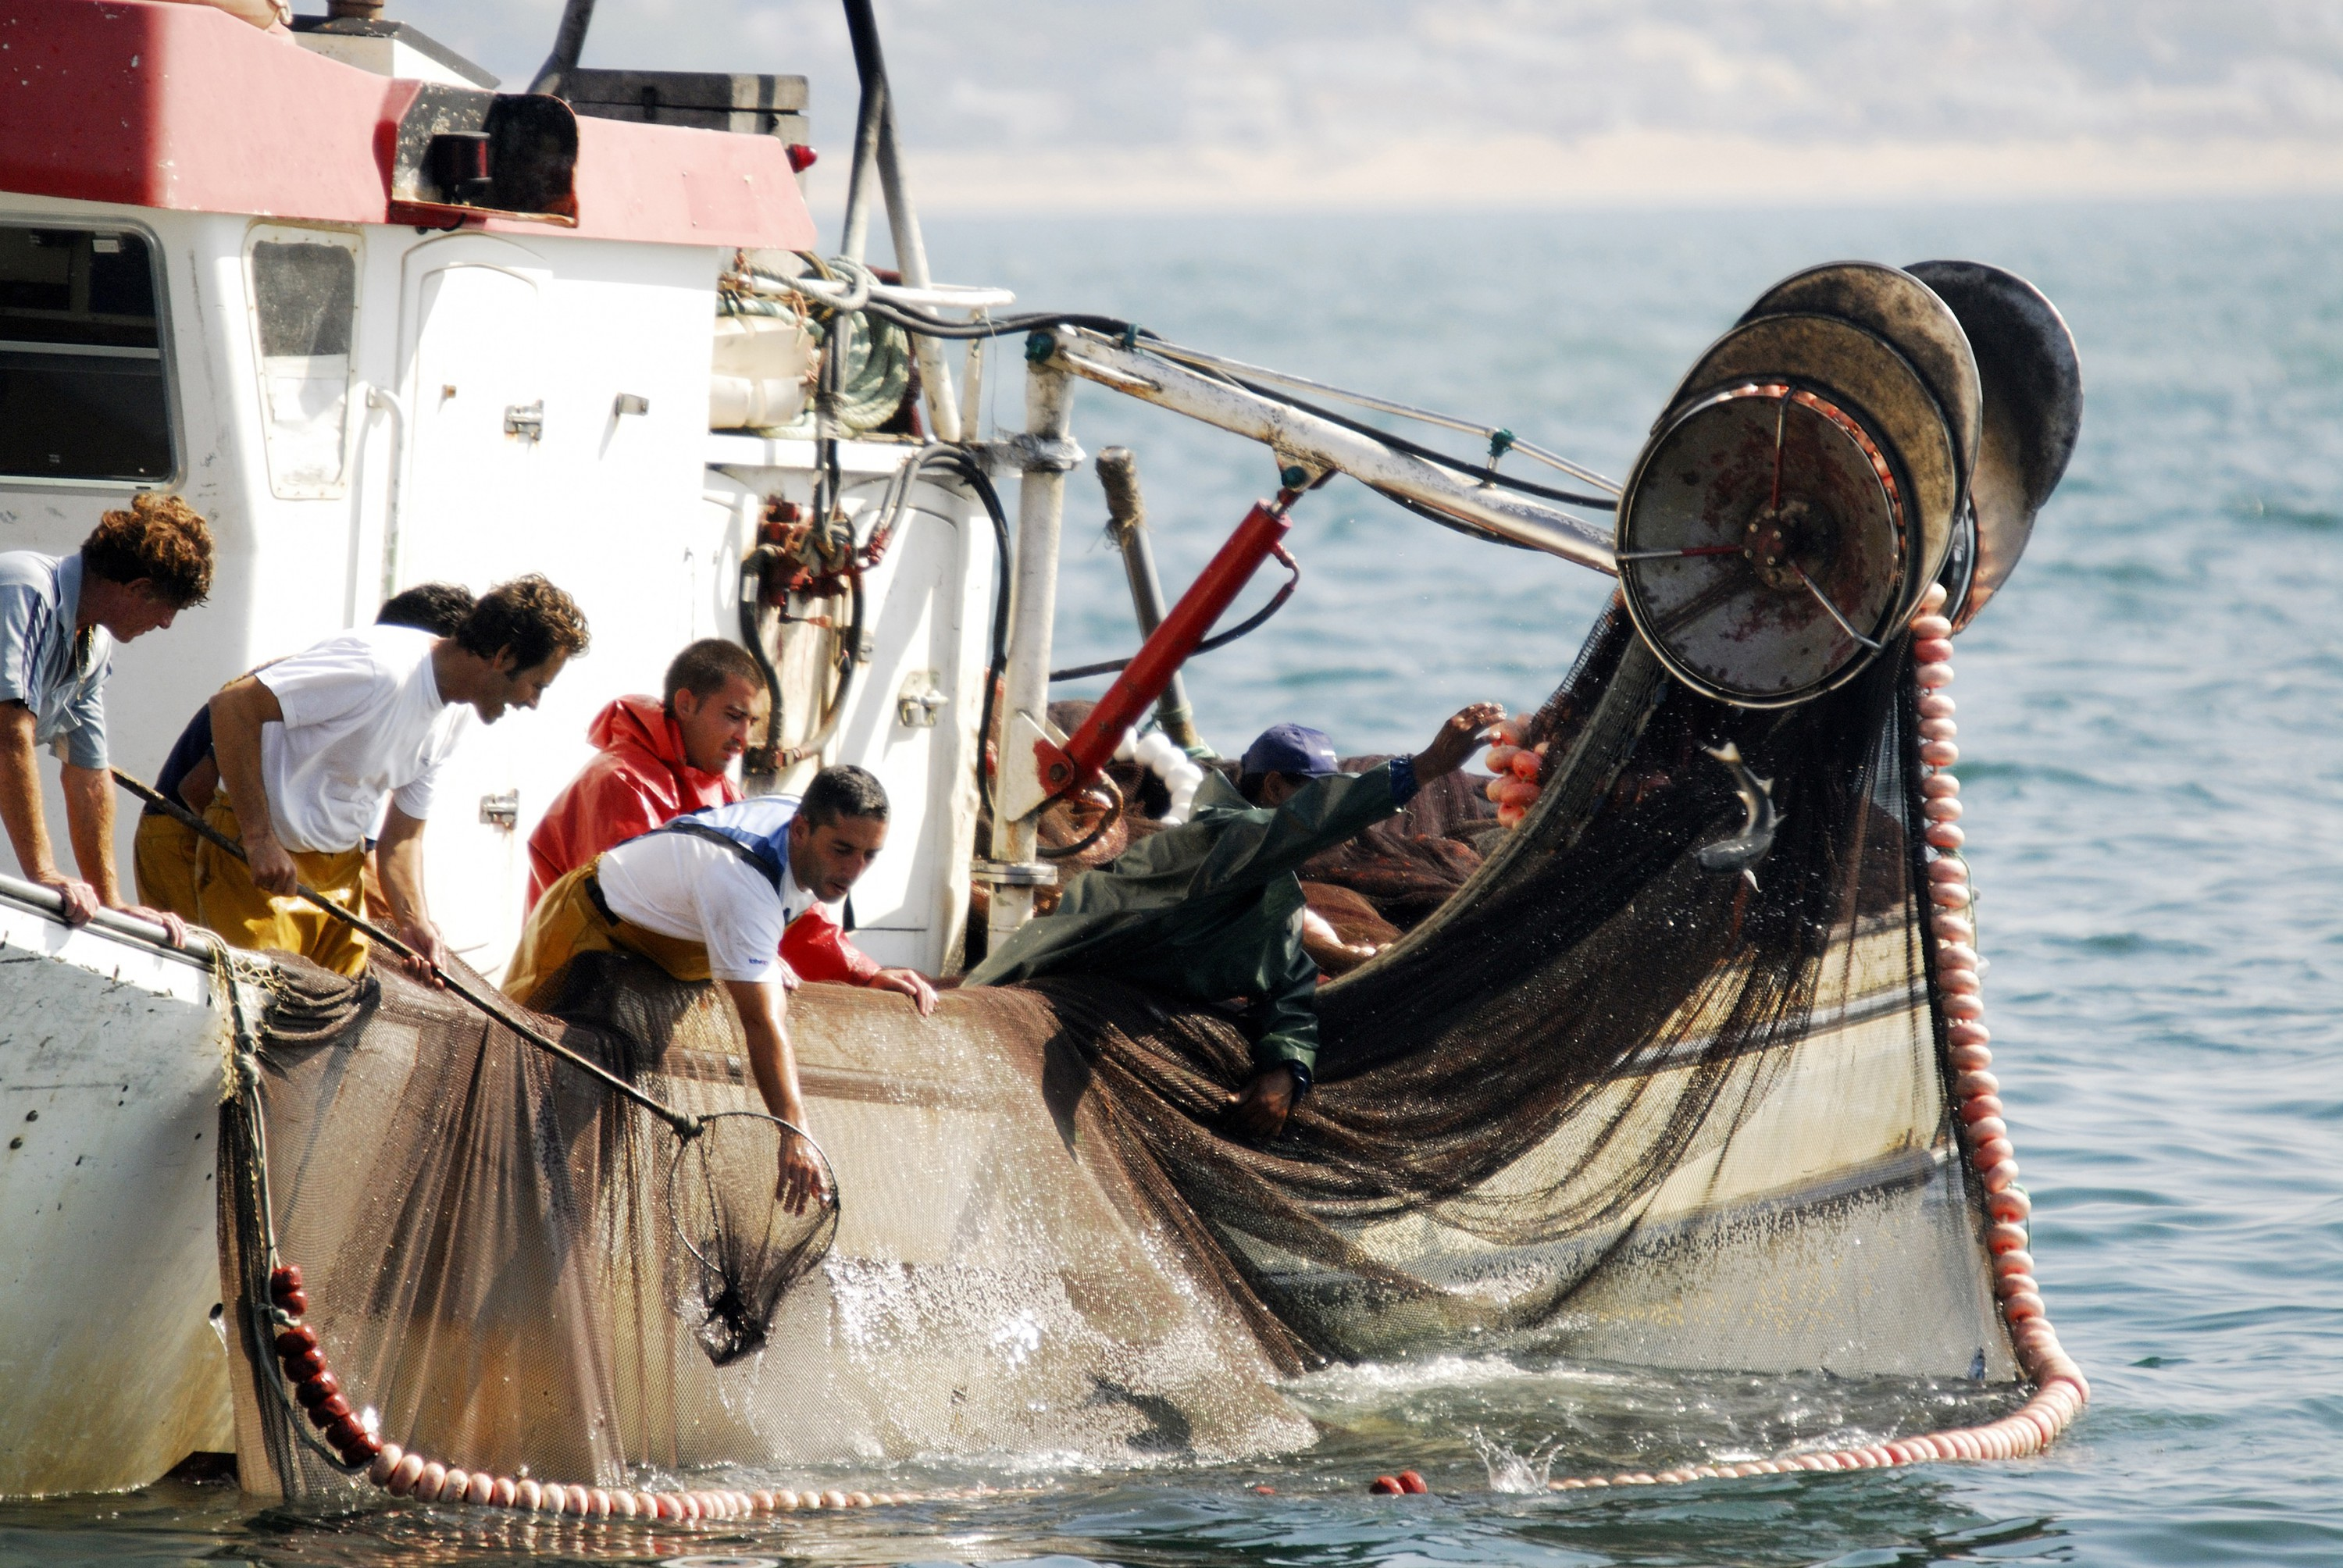 Fishermen rolling up their nets in Huelva, Spain.